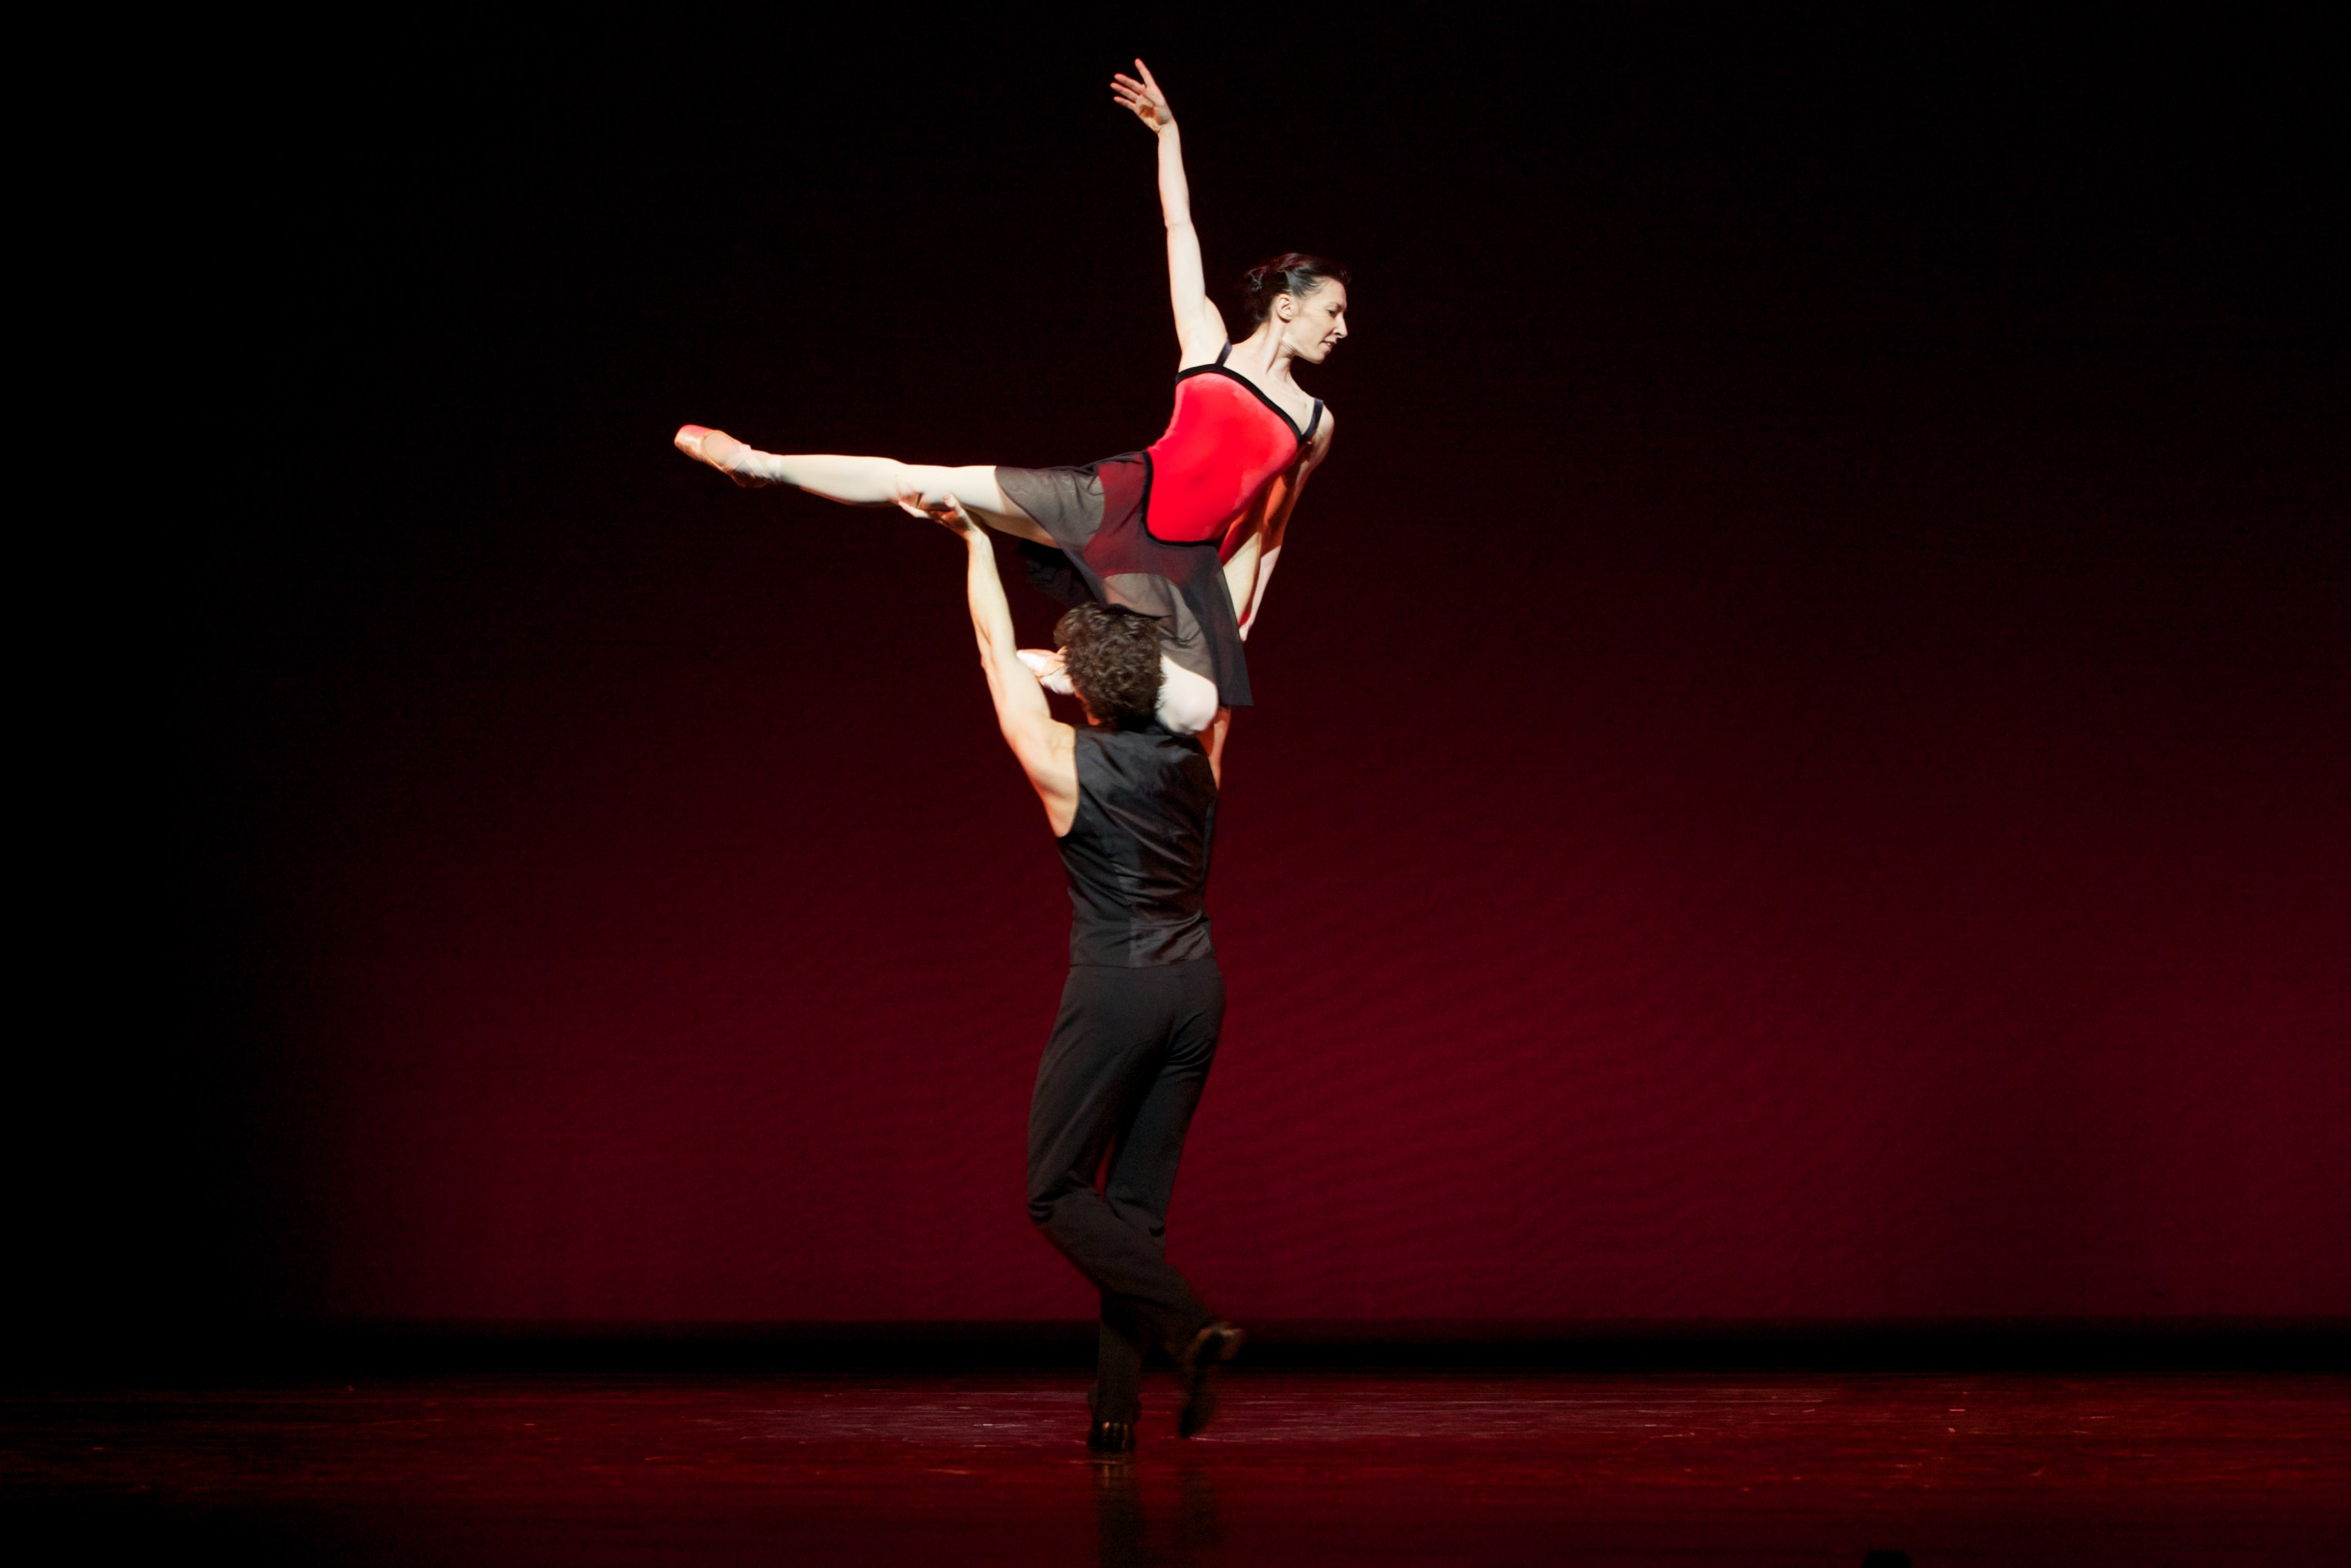 two dancers perform a high ballet lift